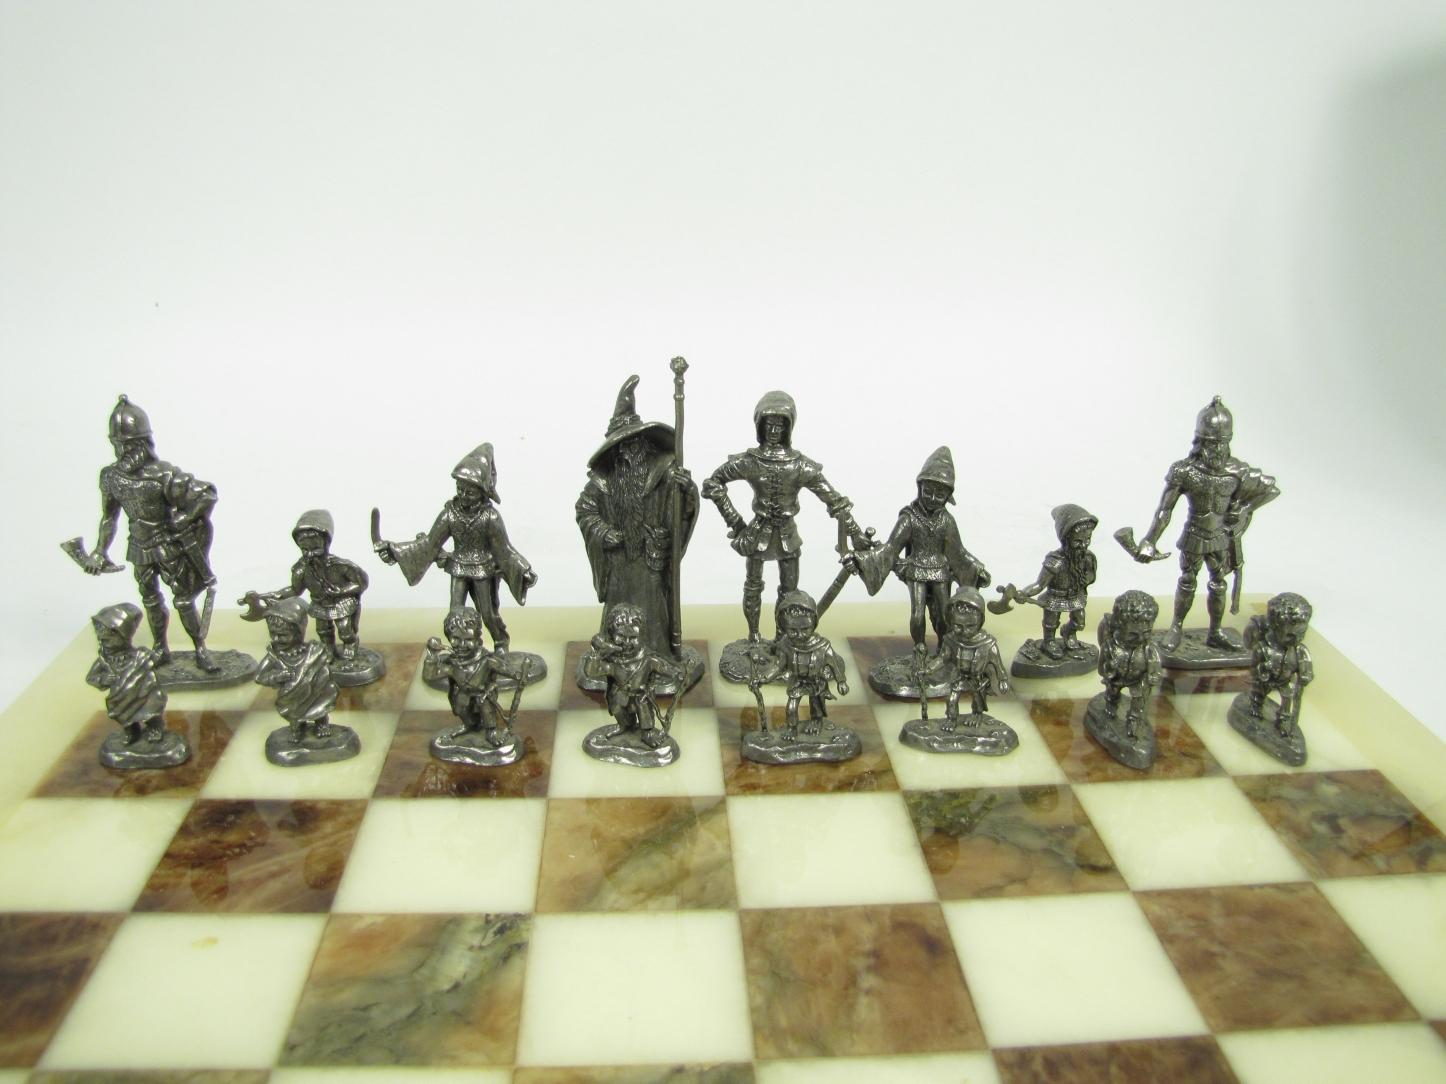 Lord Of The Rings Metal Figurines Chess Set Marble Board